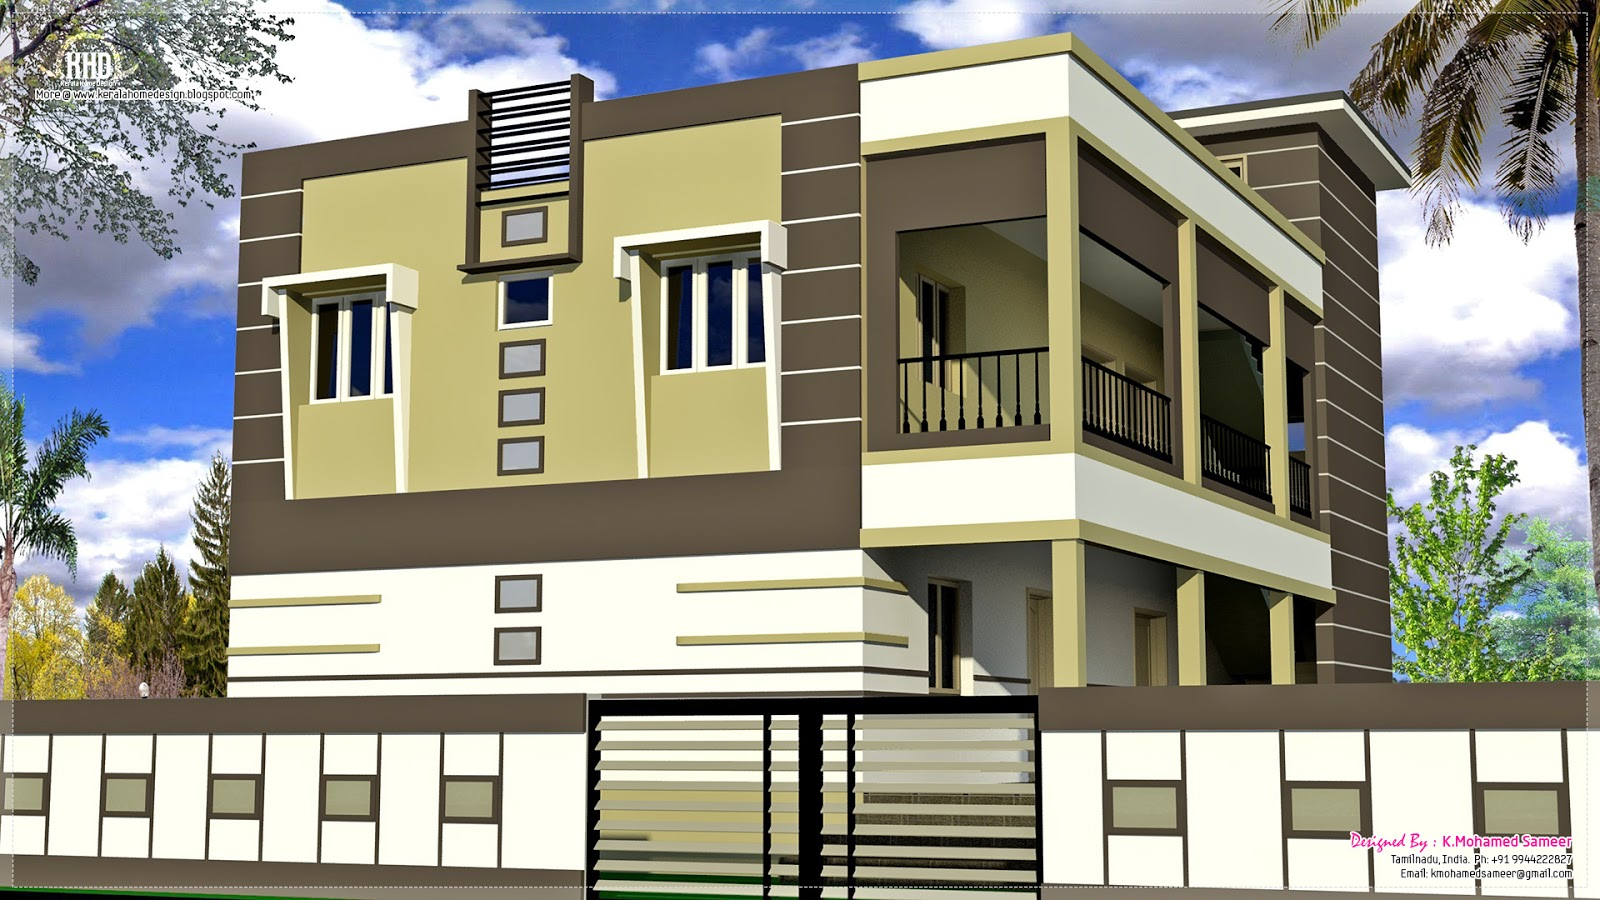 2 south indian house exterior designs house design plans for Exterior design building